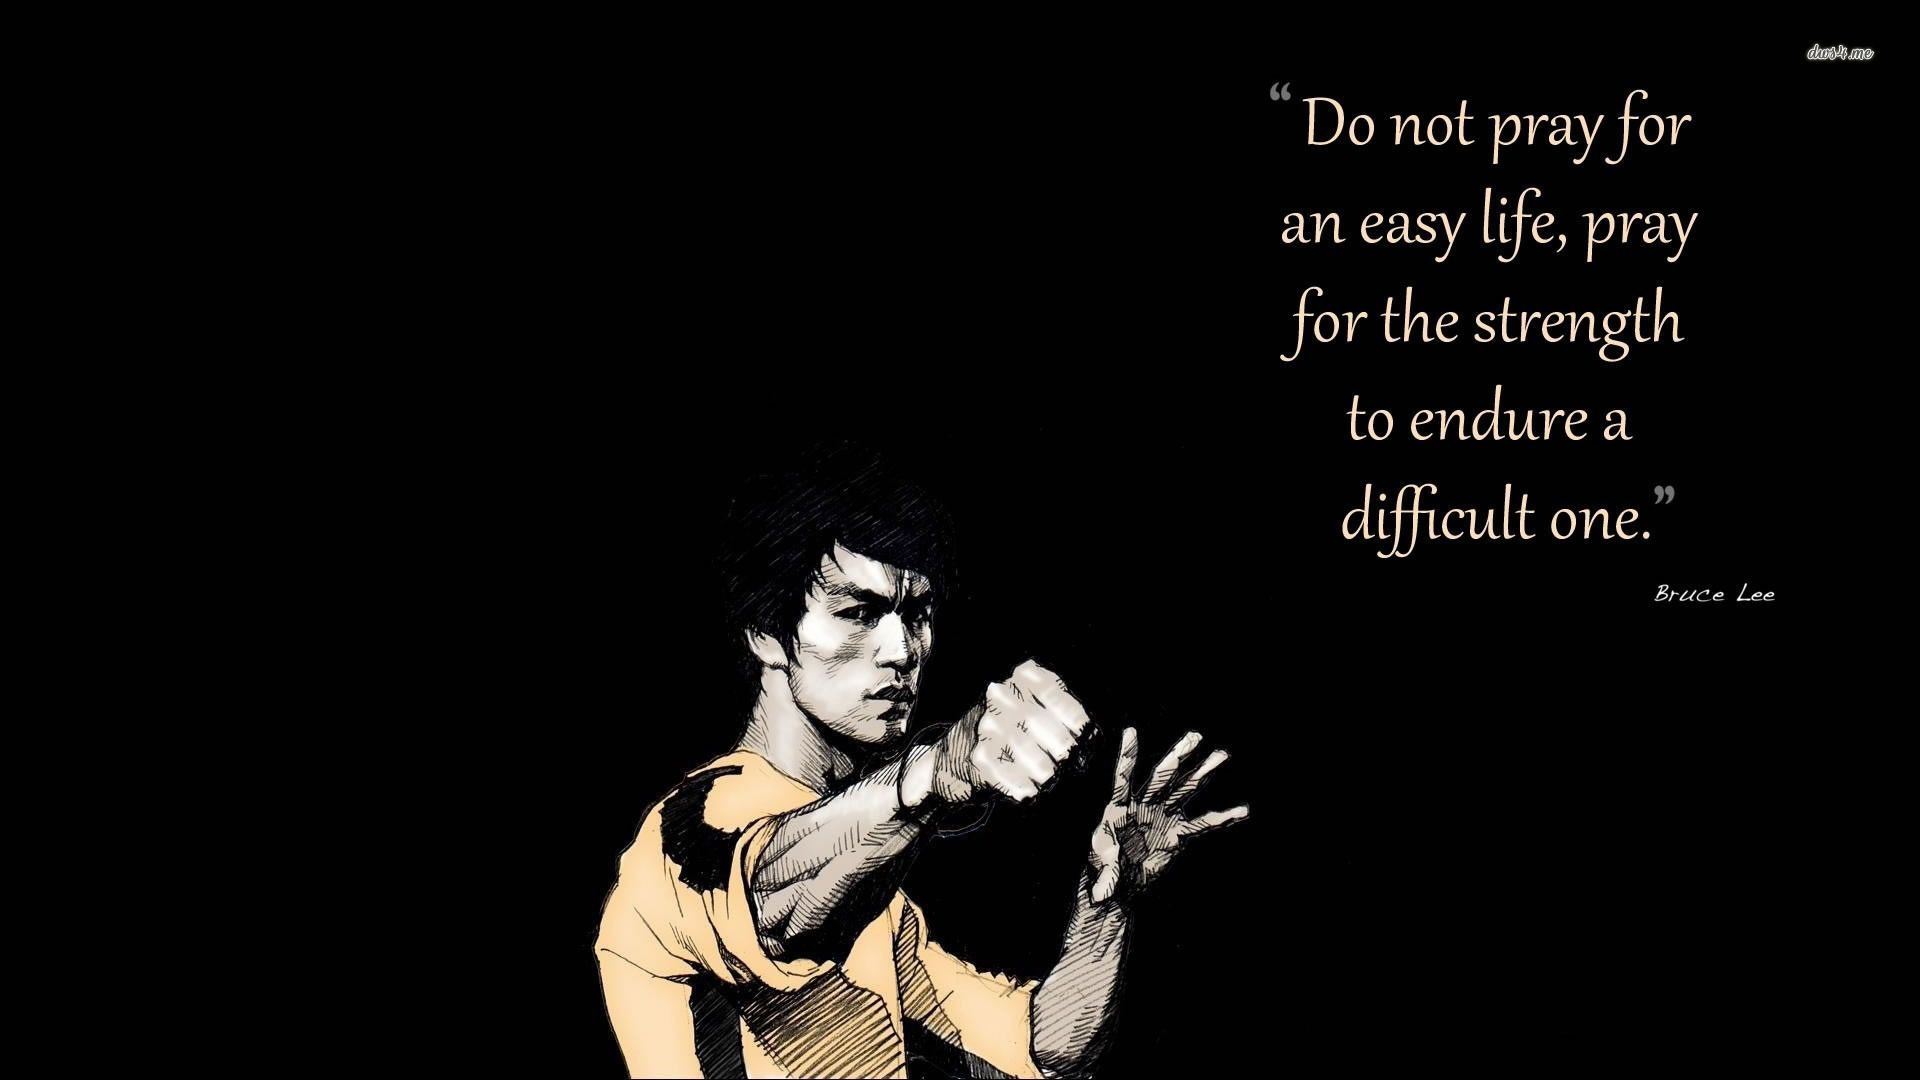 Bruce Lee Inspirational Quote Hd Wallpaper Hd Quotes Bruce Lee Bruce Lee Quotes